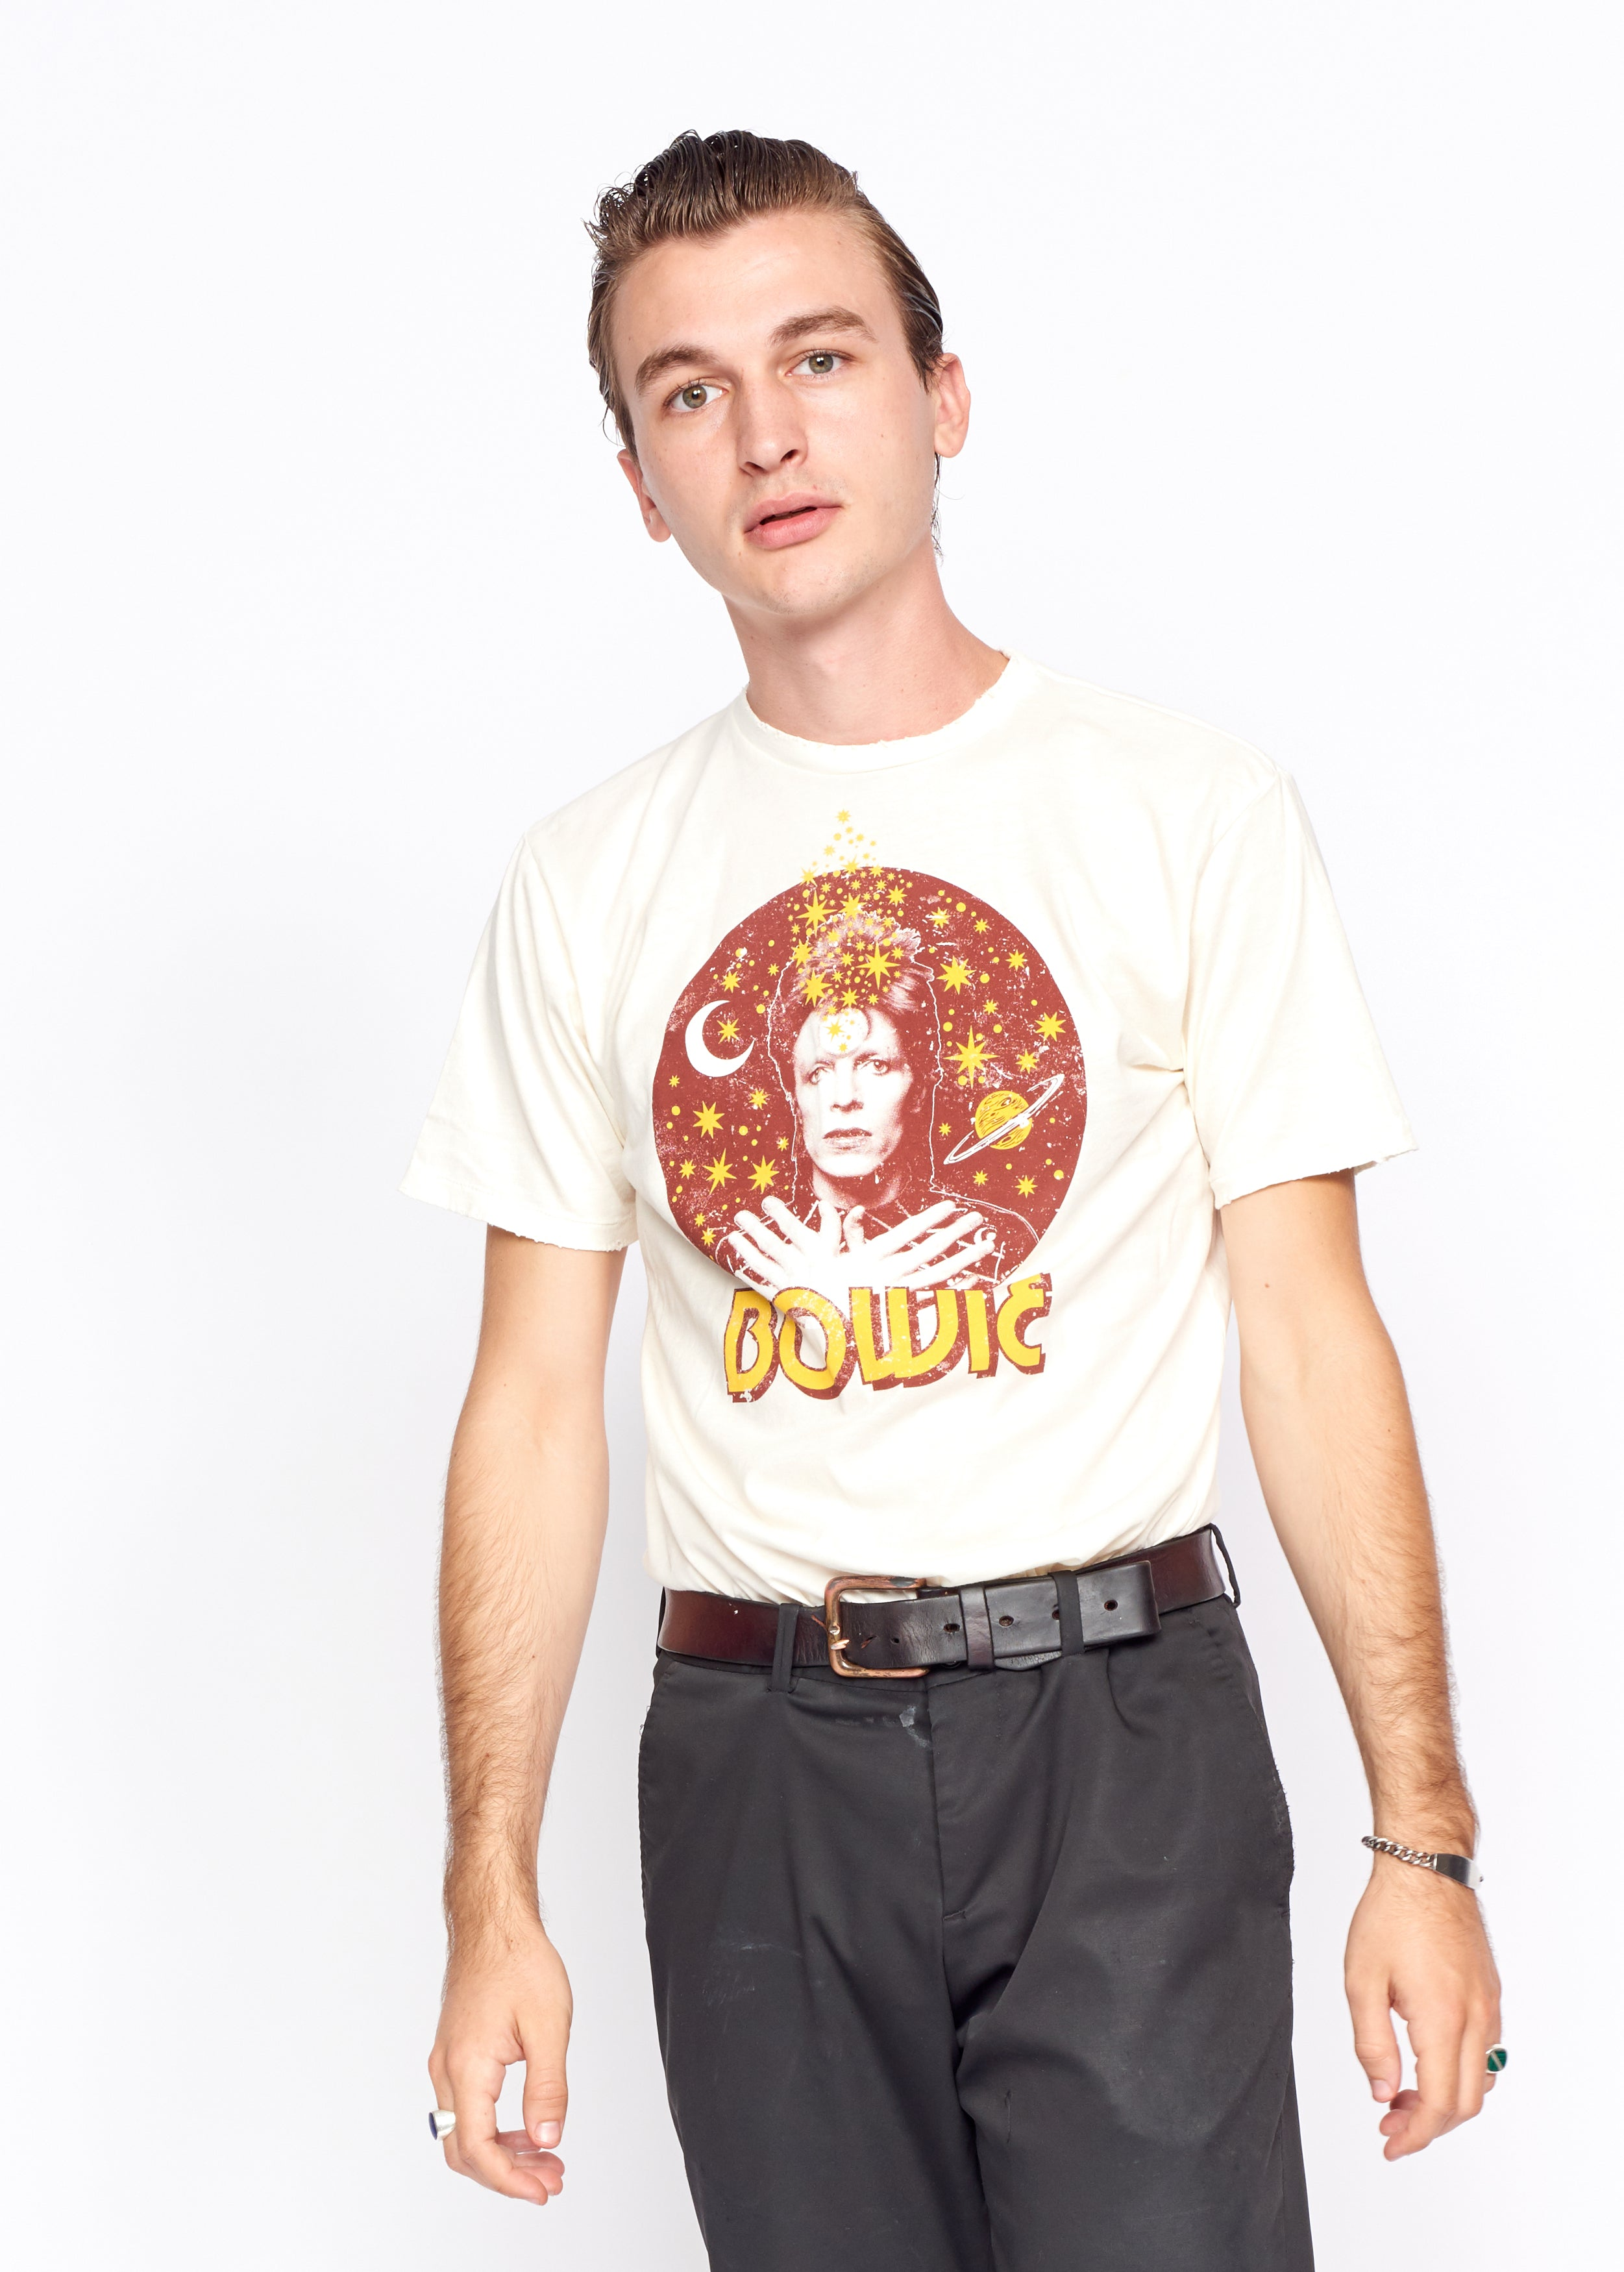 David Bowie Stardust Men's Tee Shirt - Men's Tee Shirt - Midnight Rider